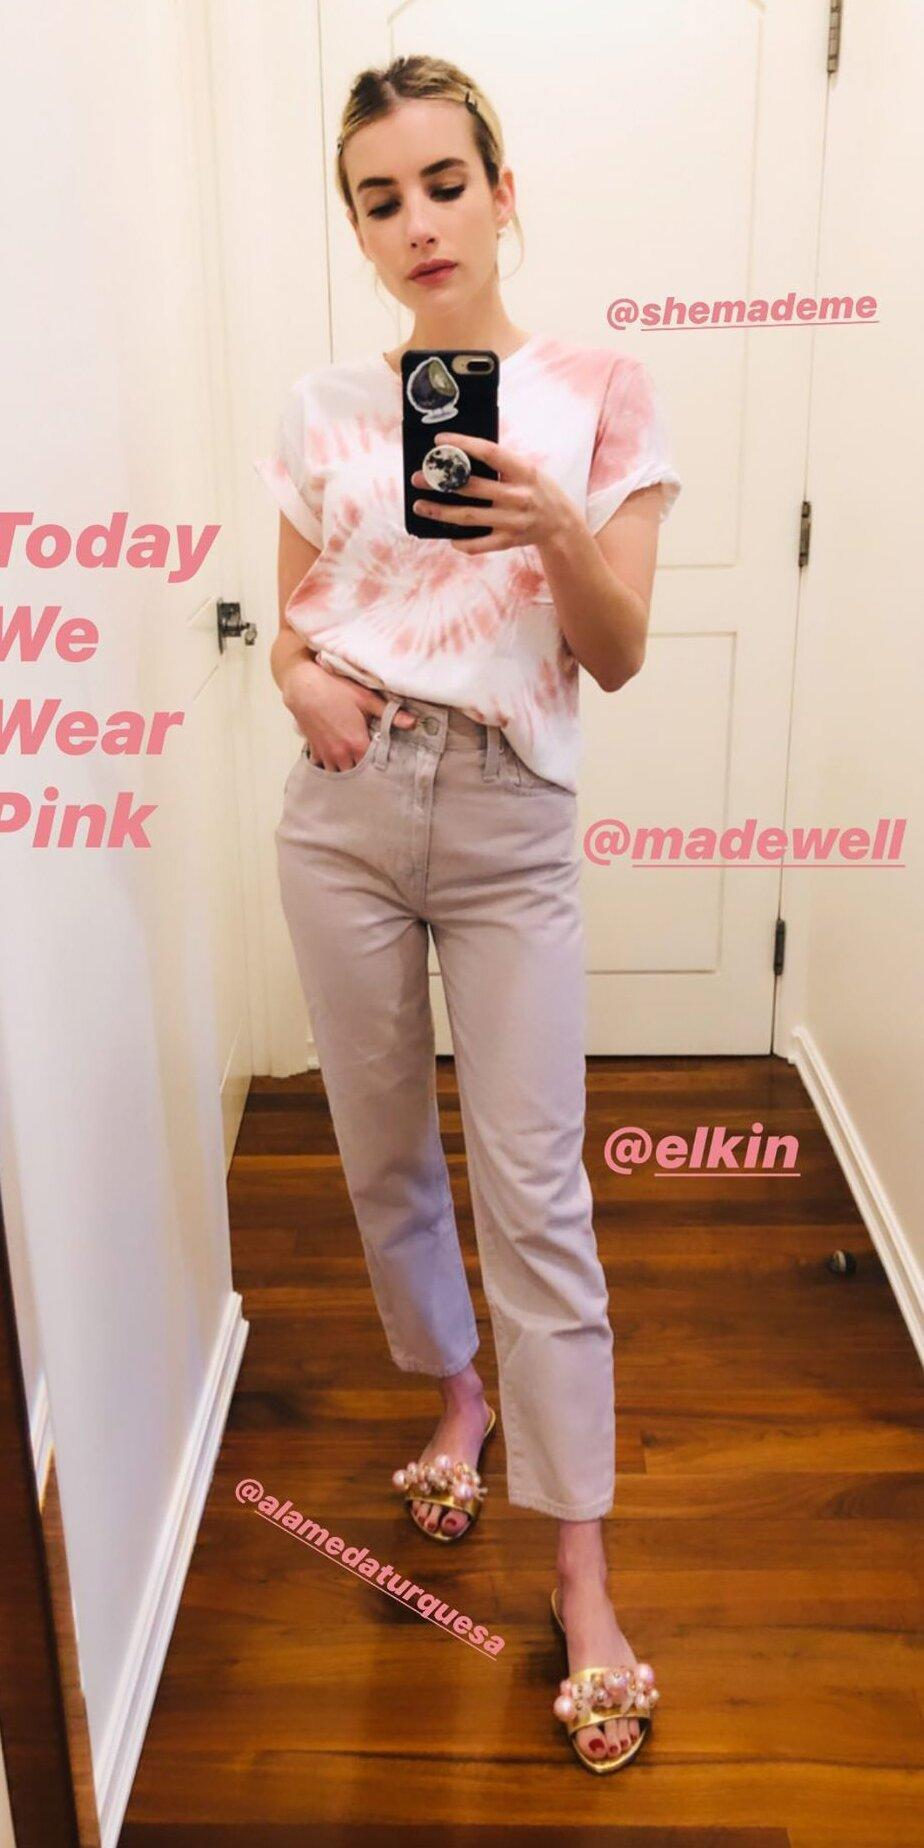 """<p>On the first Monday of May, inspired by the pink Met Gala gown of years past, Emma Roberts dressed in all pink. Her at-home look featured a pink She Made Me tie-dye t-shirt (<strong>Shop similar: </strong>$45; <a href=""""http://www.anrdoezrs.net/links/7799179/type/dlg/sid/IS%2CEmmaRoberts%2Canesta%2C%2CIMA%2C3545496%2C202005%2CI/https://www.jcrew.com/us/p/womens_category/maternity/tshirts_tanktops/vintage-cotton-crewneck-tshirt-in-tiedye/AJ578?"""" rel=""""nofollow noopener"""" target=""""_blank"""" data-ylk=""""slk:jcrew.com"""" class=""""link rapid-noclick-resp"""">jcrew.com</a>), Madewell boot-cut jeans (<strong>Shop now: </strong>$135; <a href=""""http://www.anrdoezrs.net/links/7799179/type/dlg/sid/IS%2CEmmaRoberts%2Canesta%2C%2CIMA%2C3545496%2C202005%2CI/https://www.madewell.com/slim-demi-boot-jeans-in-cloud-lining-AJ198.html"""" rel=""""nofollow noopener"""" target=""""_blank"""" data-ylk=""""slk:madewell.com"""" class=""""link rapid-noclick-resp"""">madewell.com</a>), and embellished Alameda Turquesa slides (<strong>Shop similar:</strong> $216; <a href=""""https://click.linksynergy.com/deeplink?id=93xLBvPhAeE&mid=42352&murl=https%3A%2F%2Fwww.shopbop.com%2Fcrystal-pearl-slide-mystique%2Fvp%2Fv%3D1%2F1505331120.htm%3F&u1=IS%2CEmmaRoberts%2Canesta%2C%2CIMA%2C3545496%2C202005%2CI"""" rel=""""nofollow noopener"""" target=""""_blank"""" data-ylk=""""slk:shopbop.com"""" class=""""link rapid-noclick-resp"""">shopbop.com</a>).</p>"""